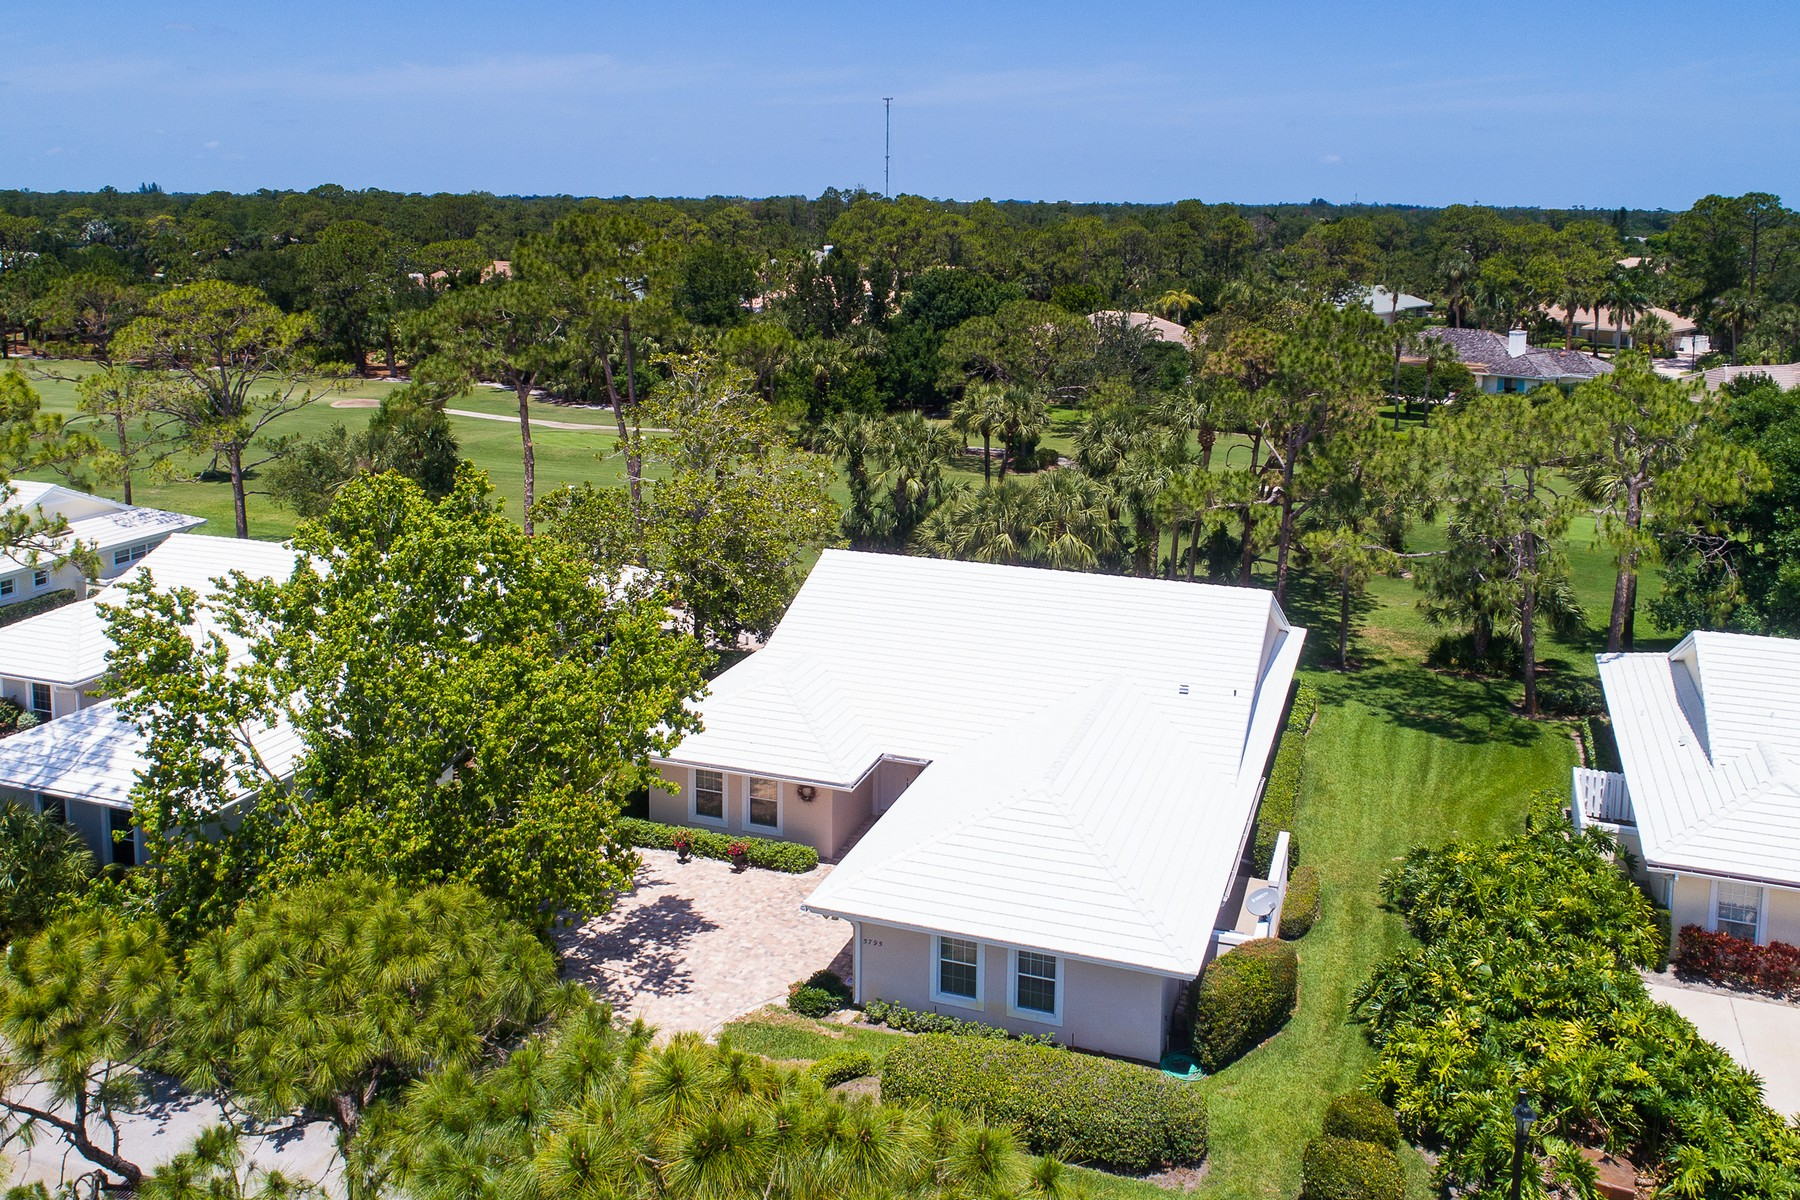 Casa Unifamiliar por un Venta en Spacious Villa Overlooking Golf Course 5795 Magnolia Lane Vero Beach, Florida 32967 Estados Unidos